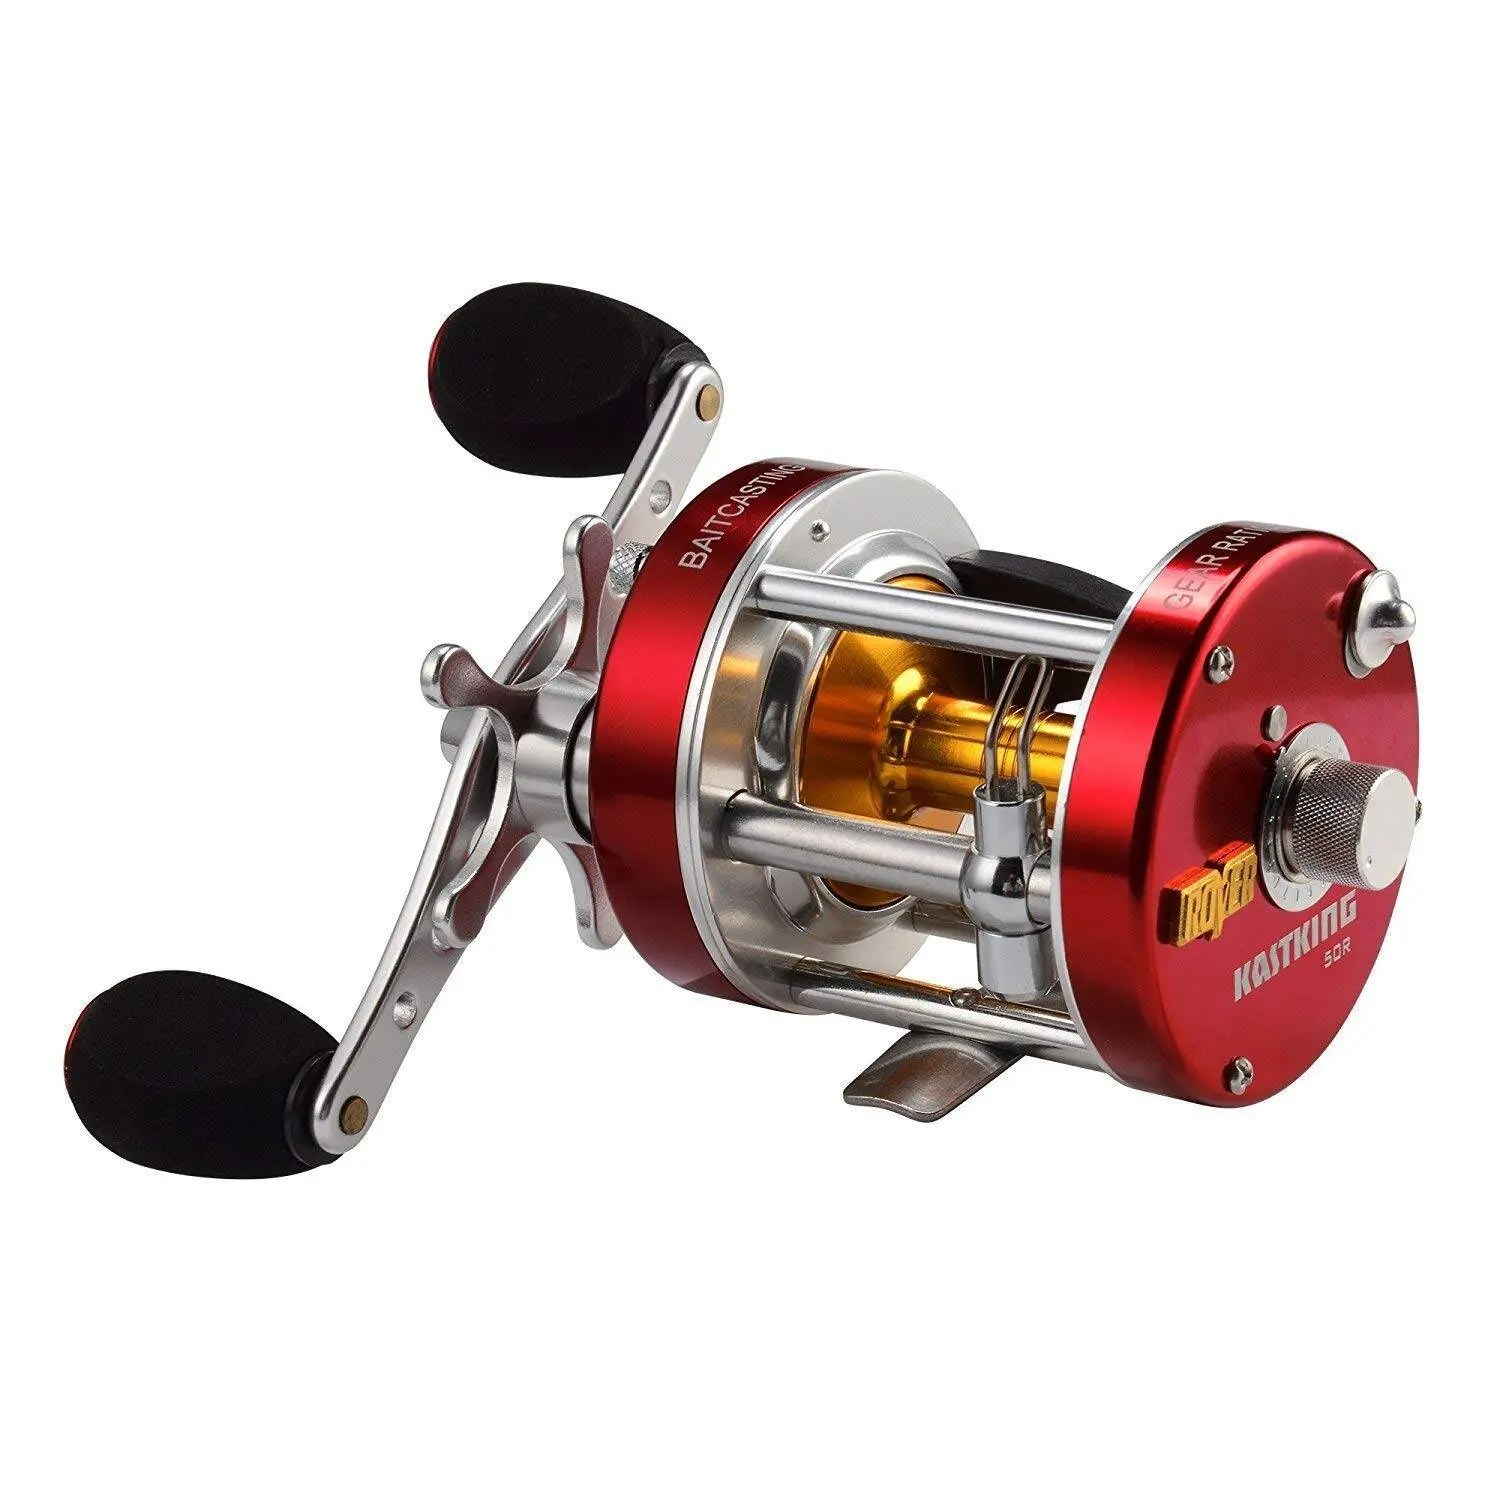 KastKing Rover Round Reel Review No 1 Rated Conventional Reel